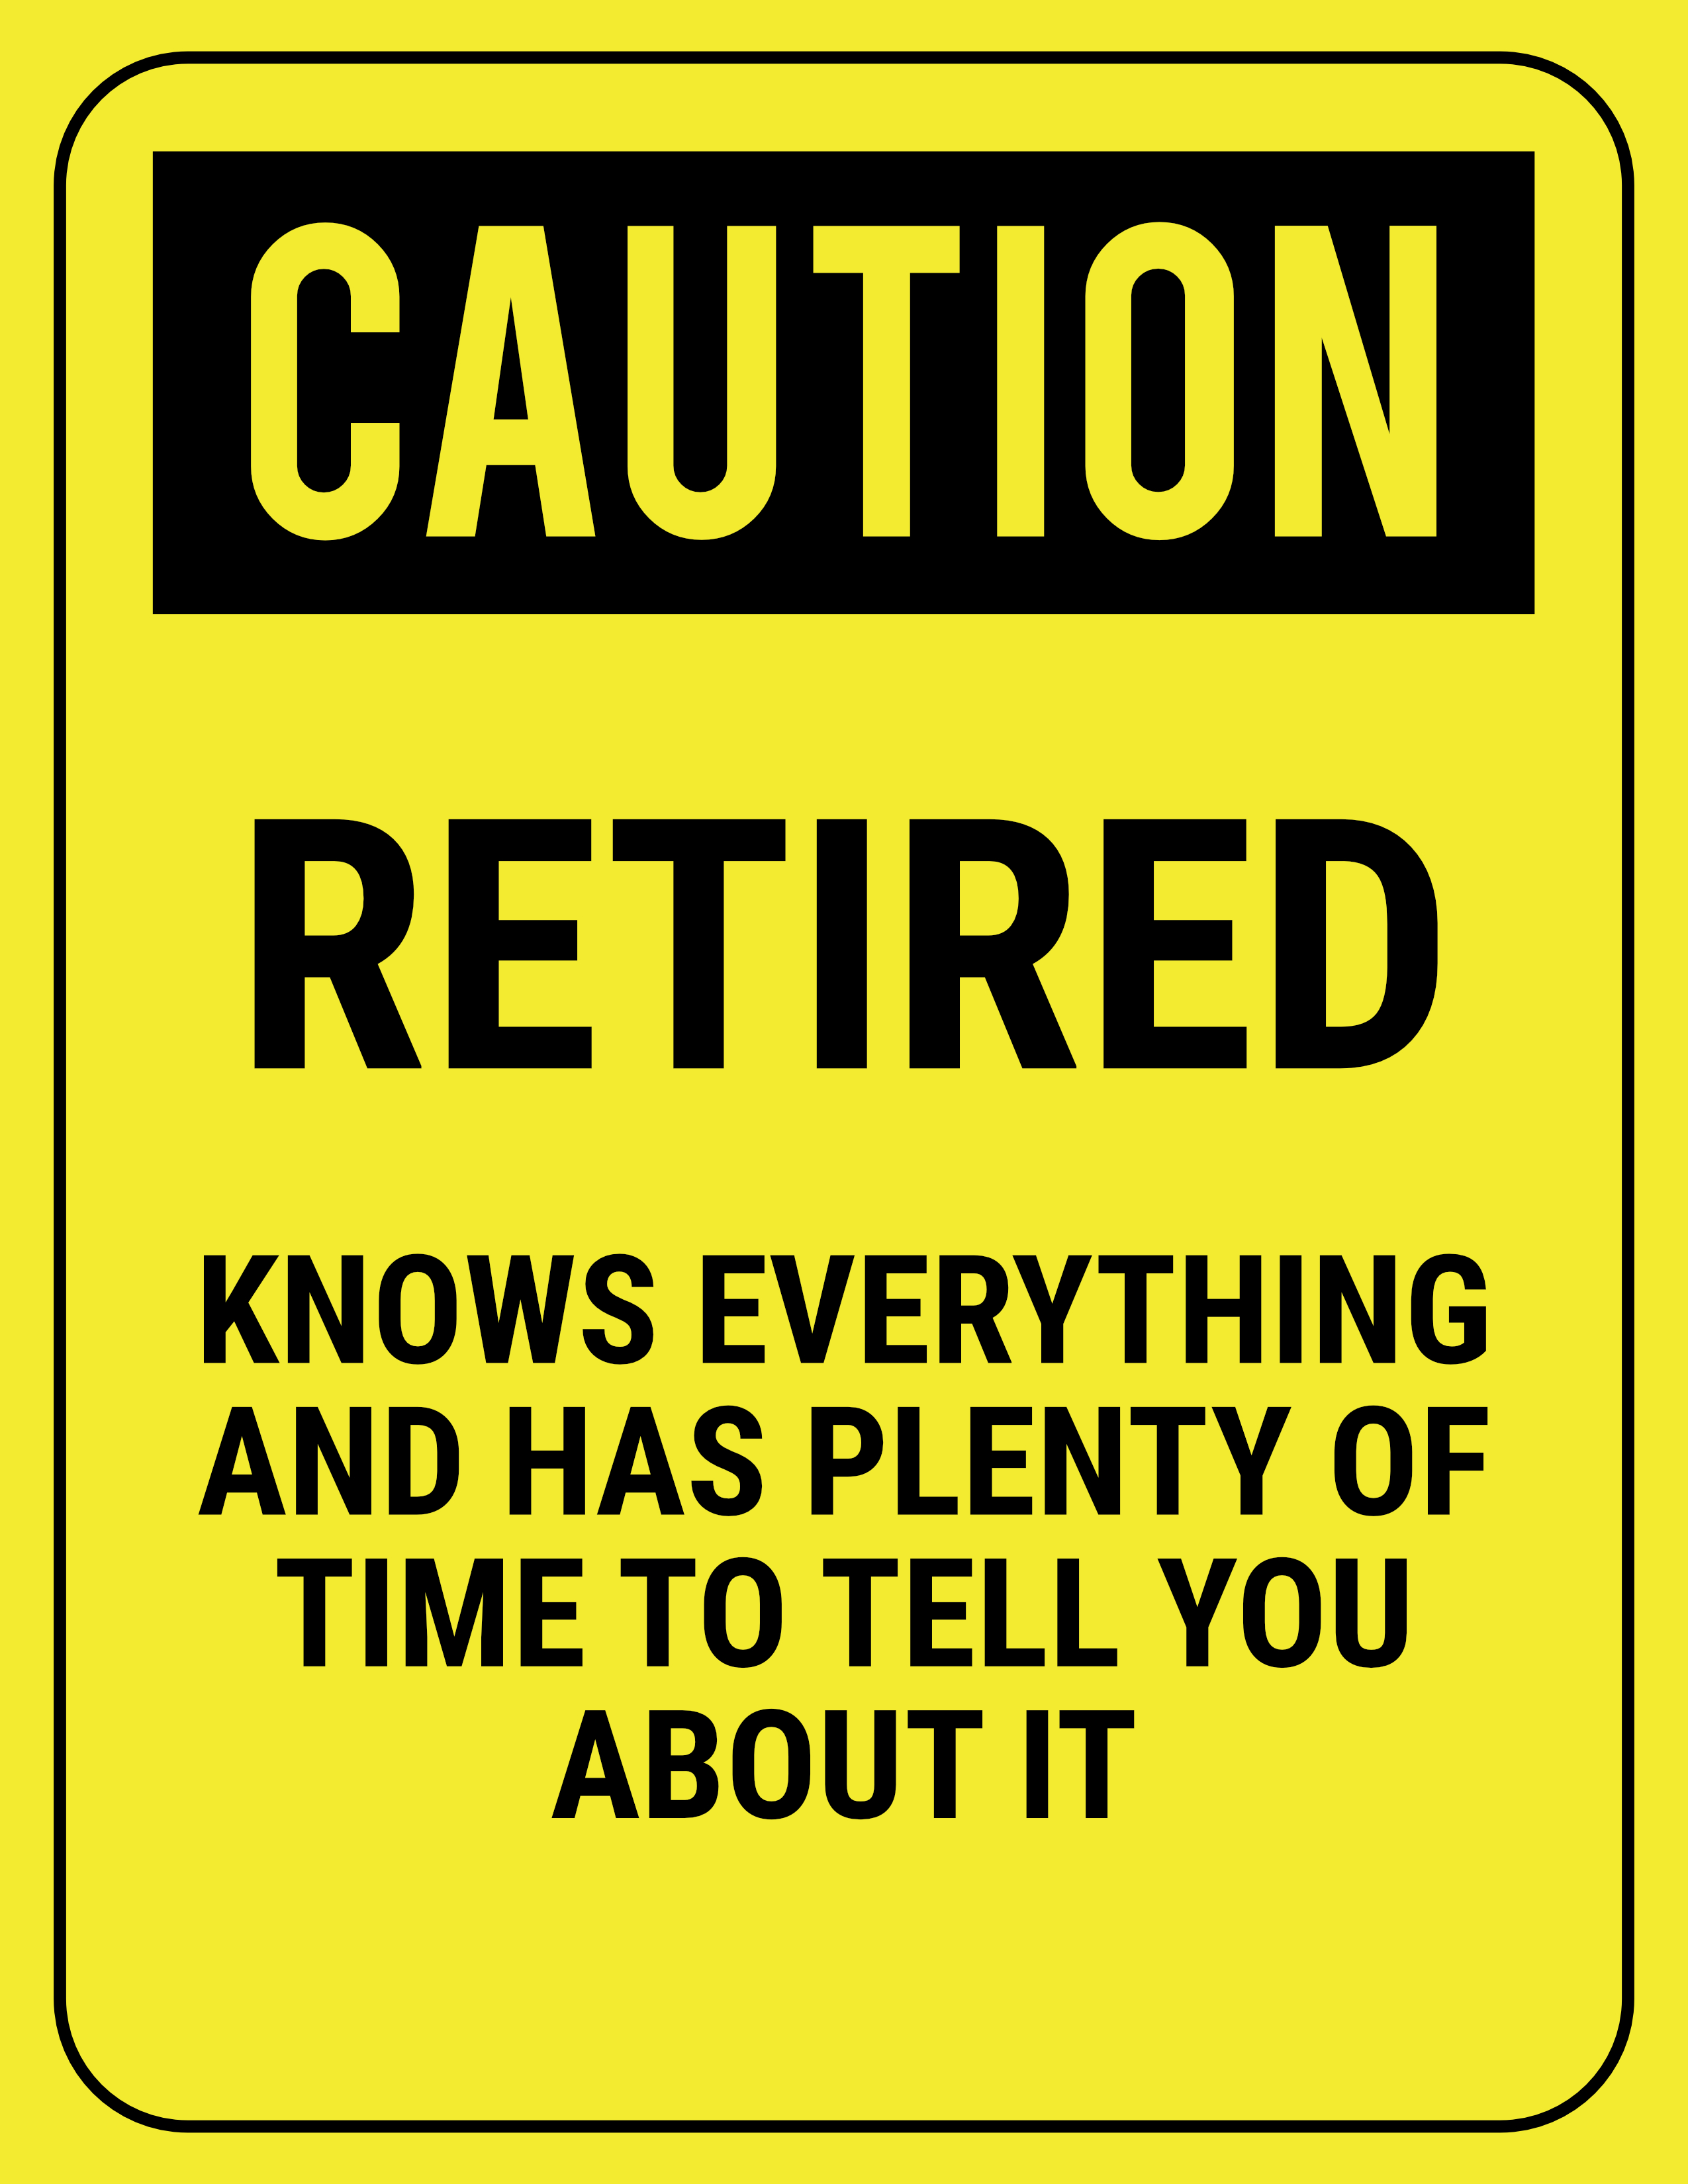 Funny Safety Signs To Download And Print